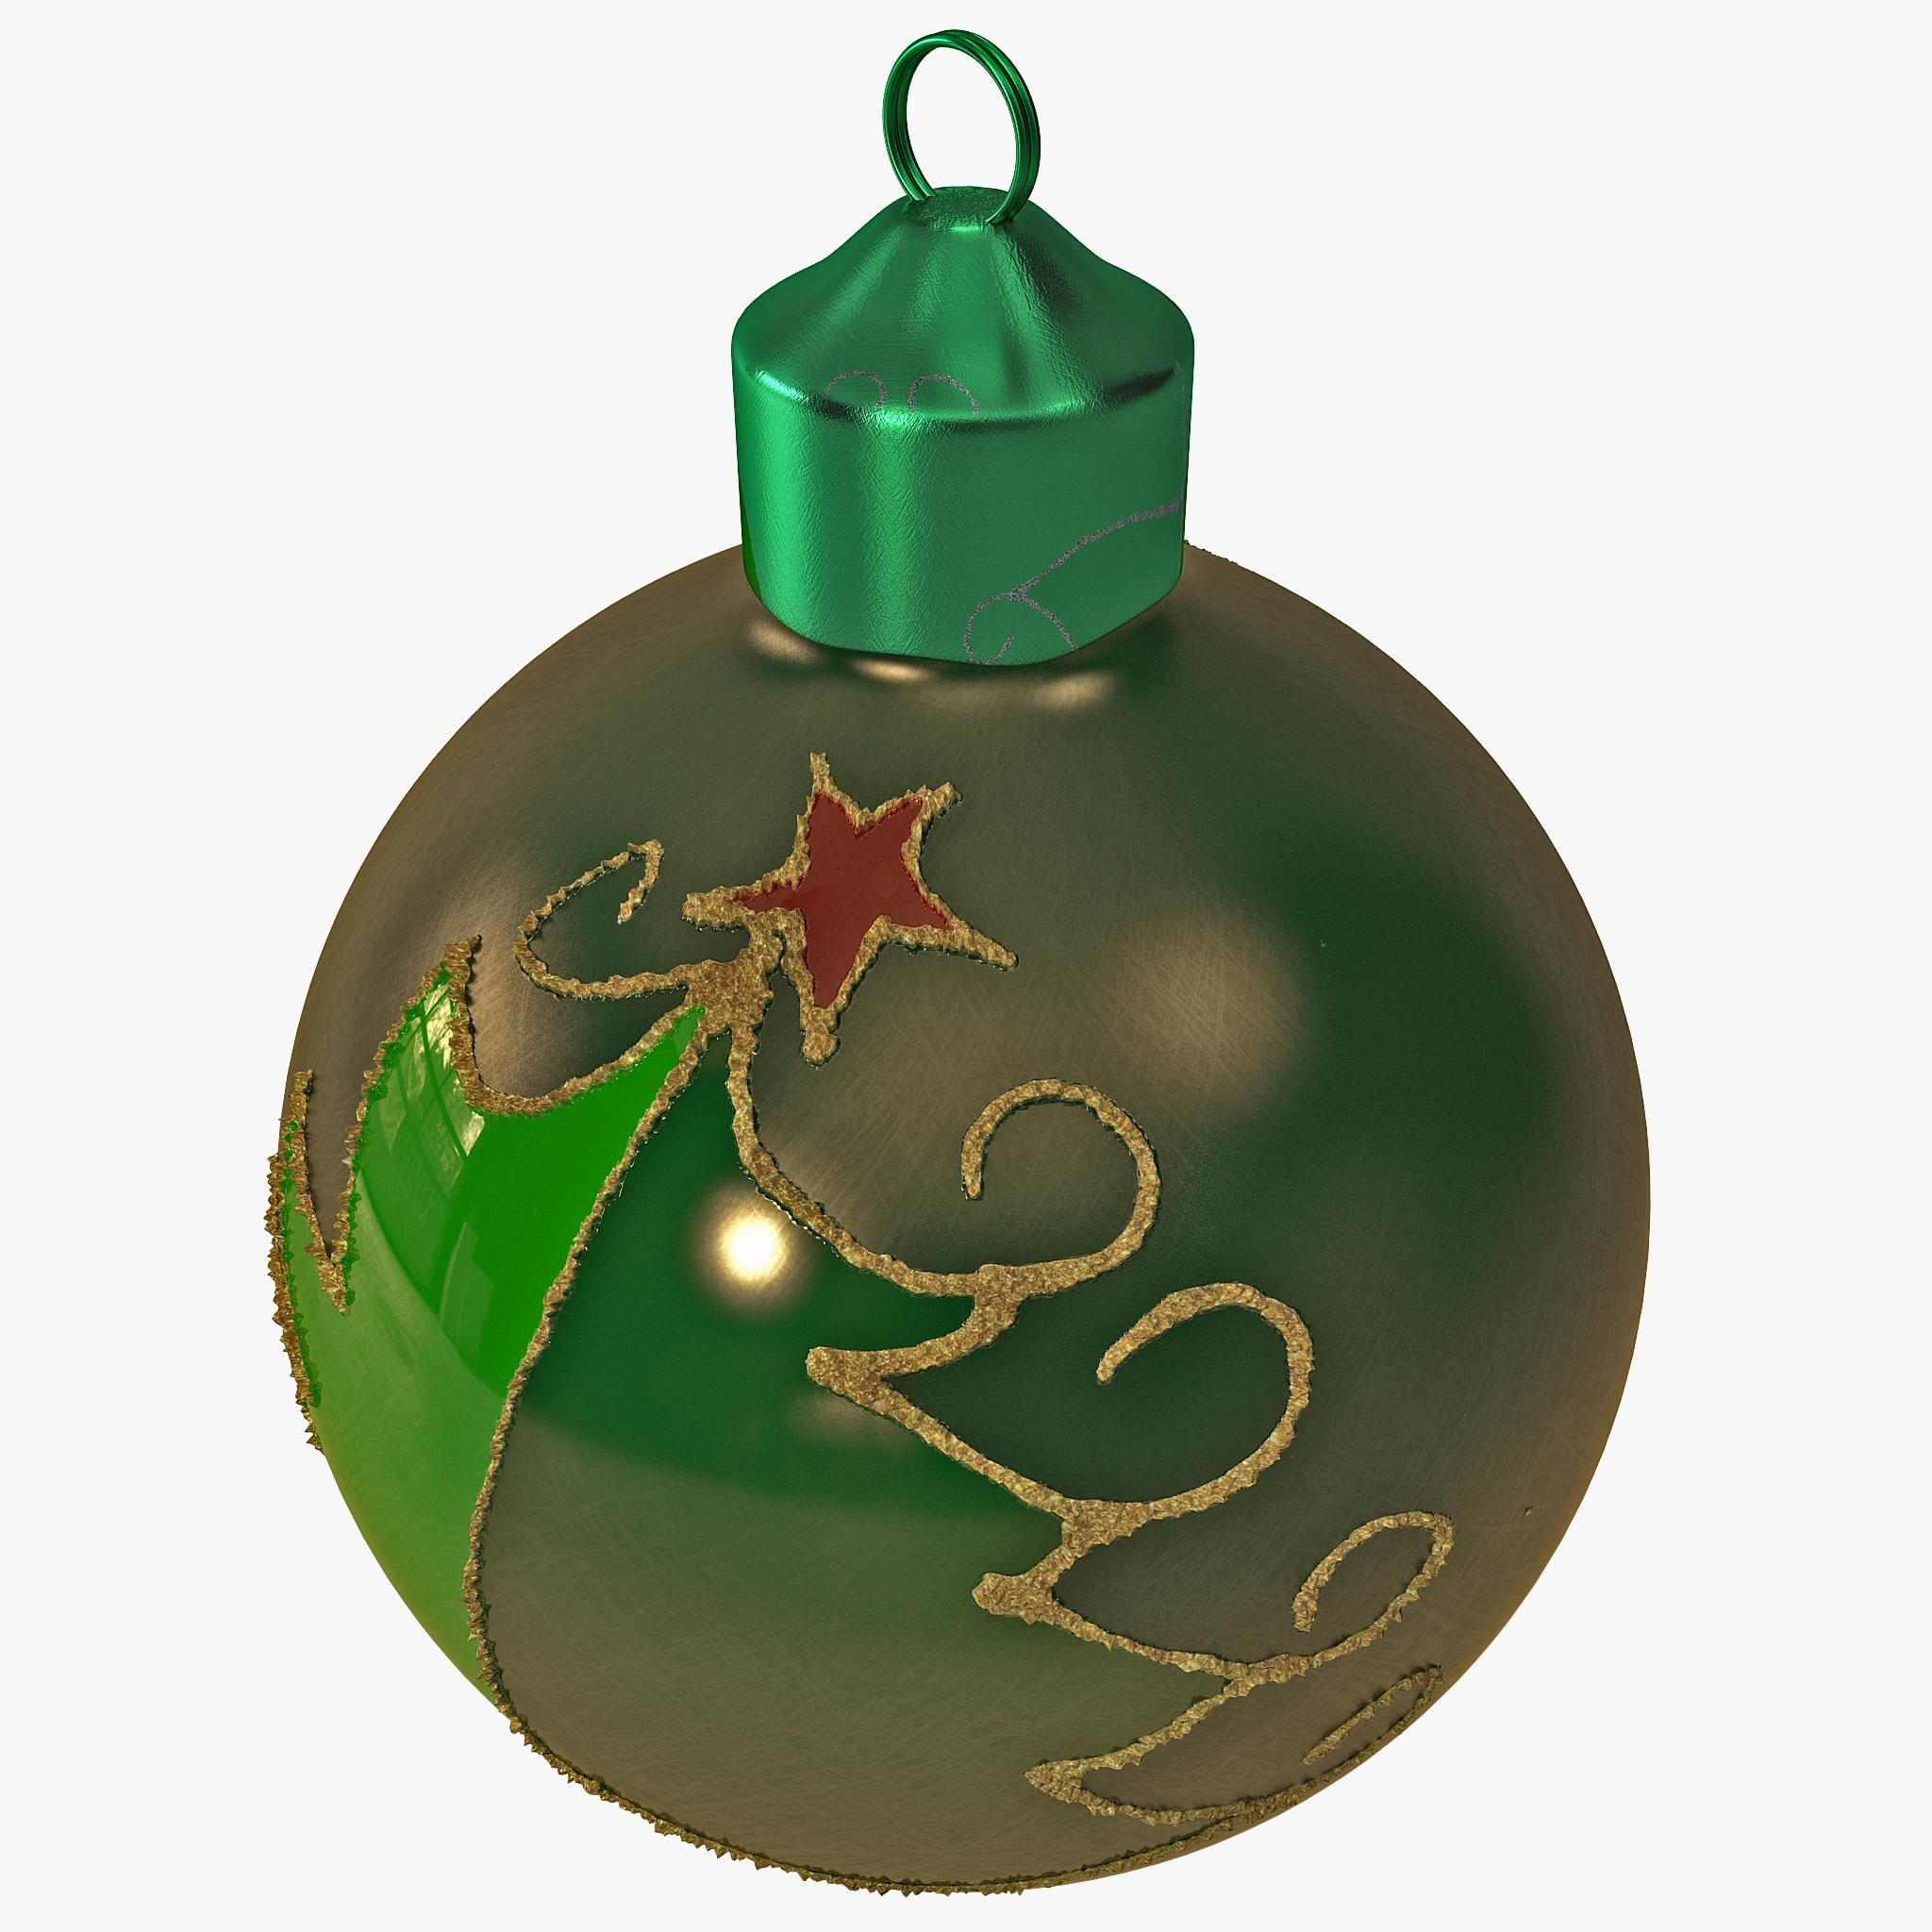 Christmas Ornament Ball 3d Model Ad Ornament Christmas Model Ball Christmas Ornaments Ornaments Graduation Invitations Template